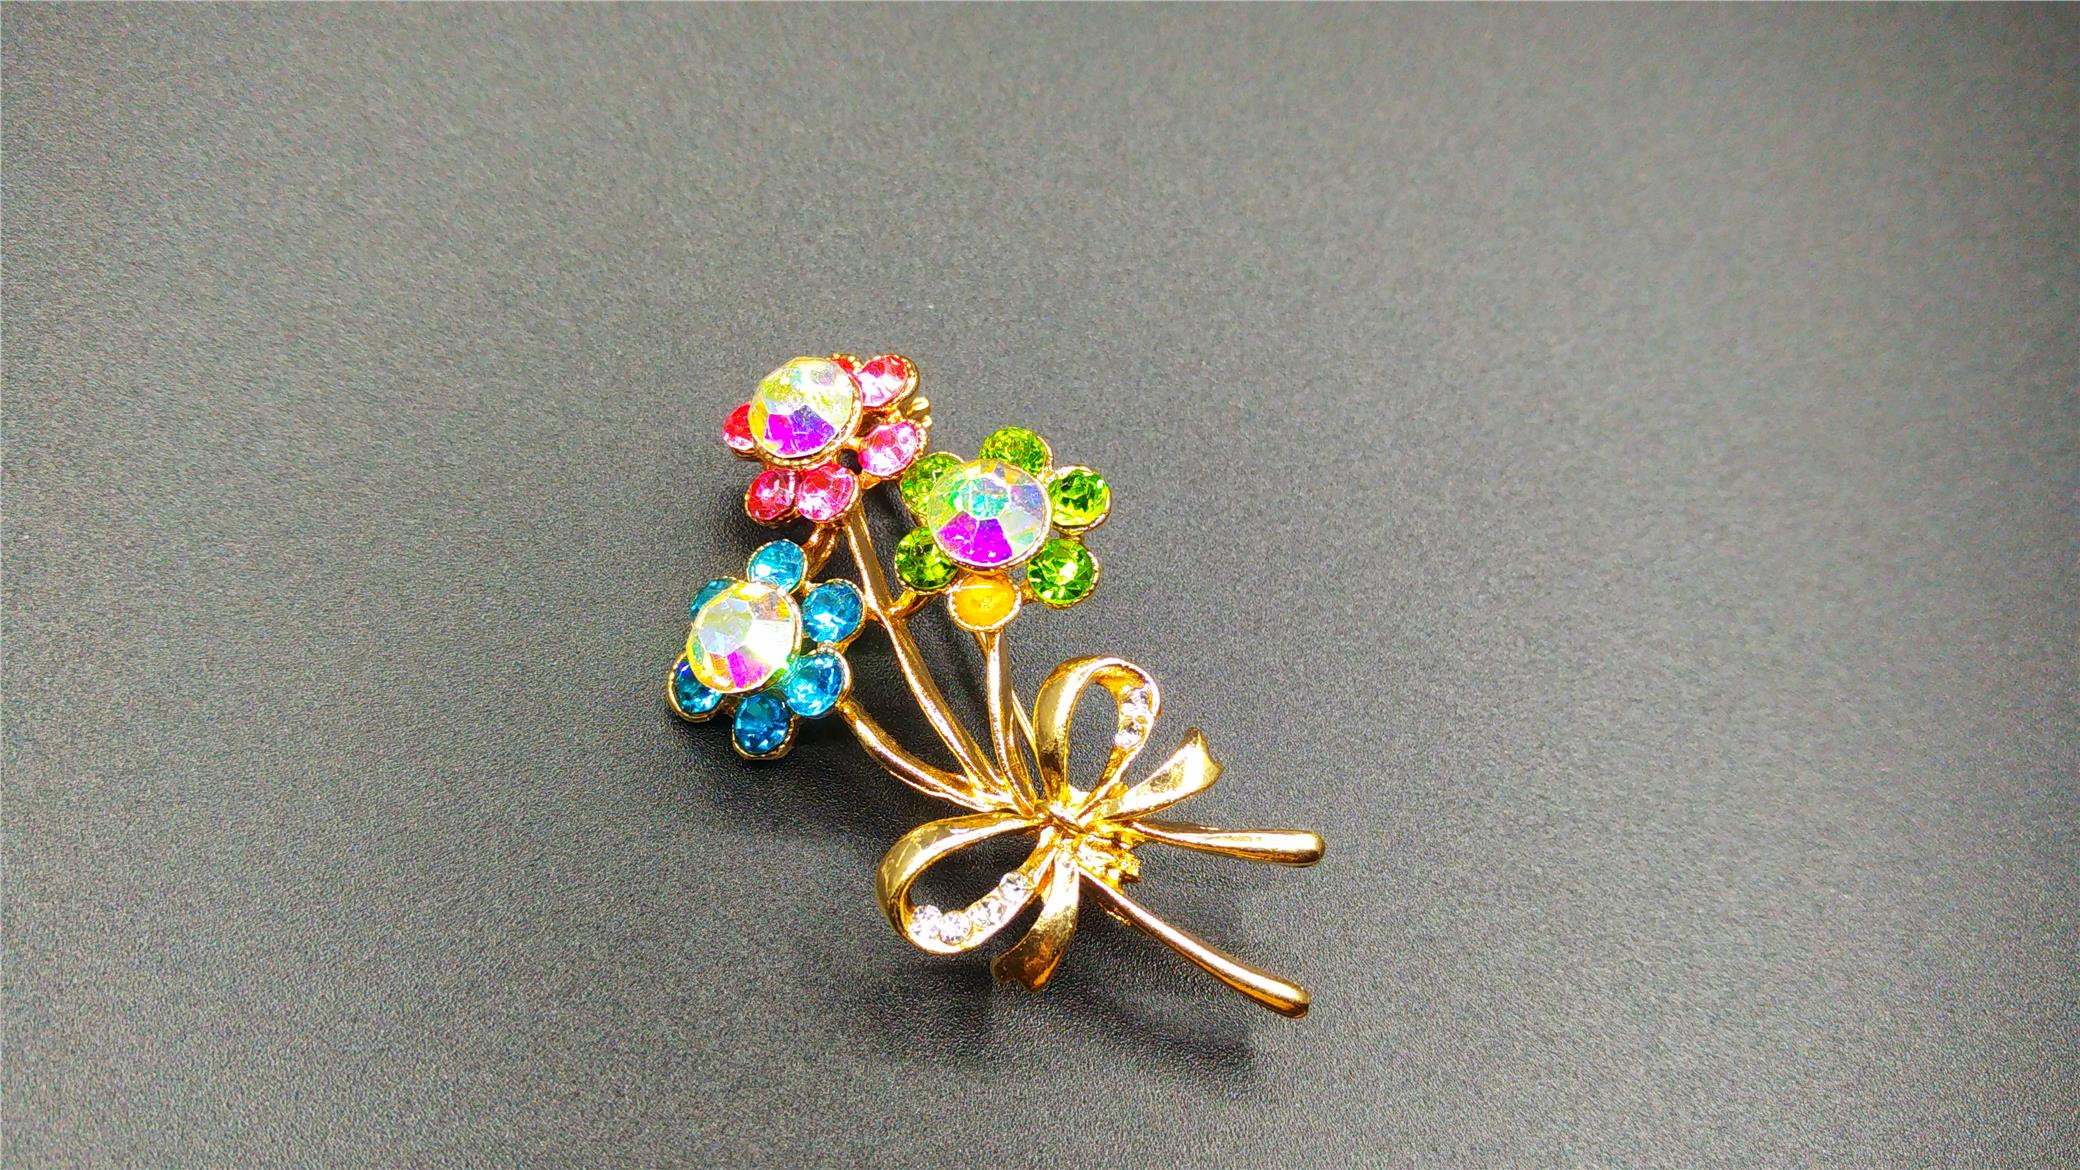 pins brooches jewellery starlet costume uk corsage secrets brooch s glitzy